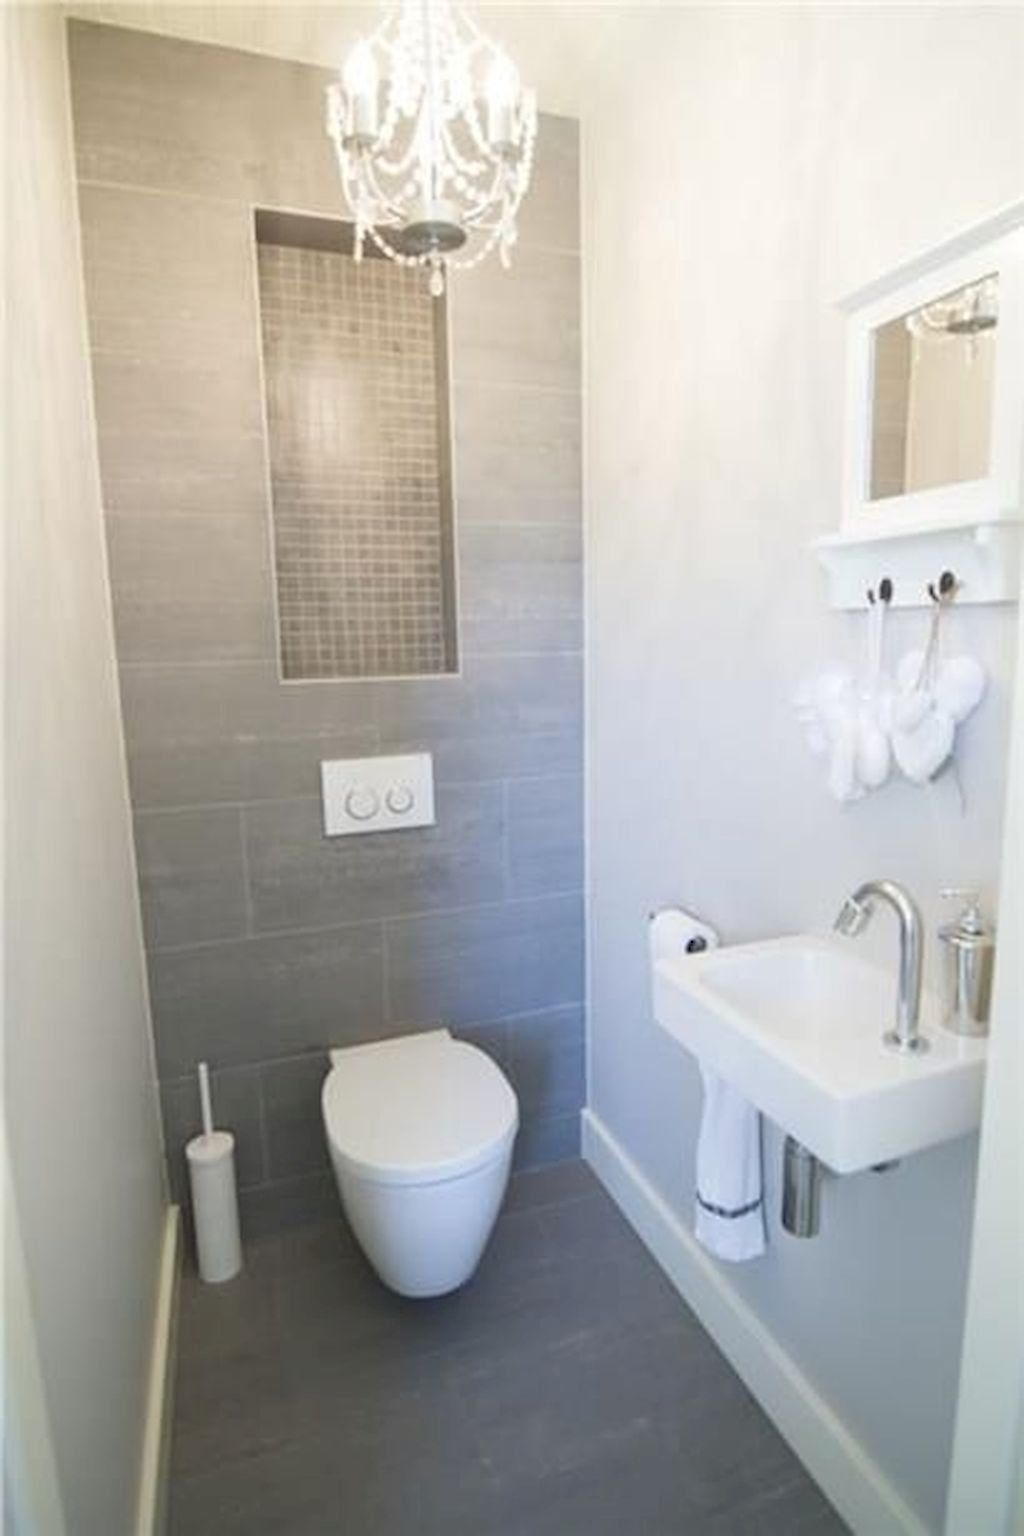 Space Saving Toilet Design For Small Bathroom With Images